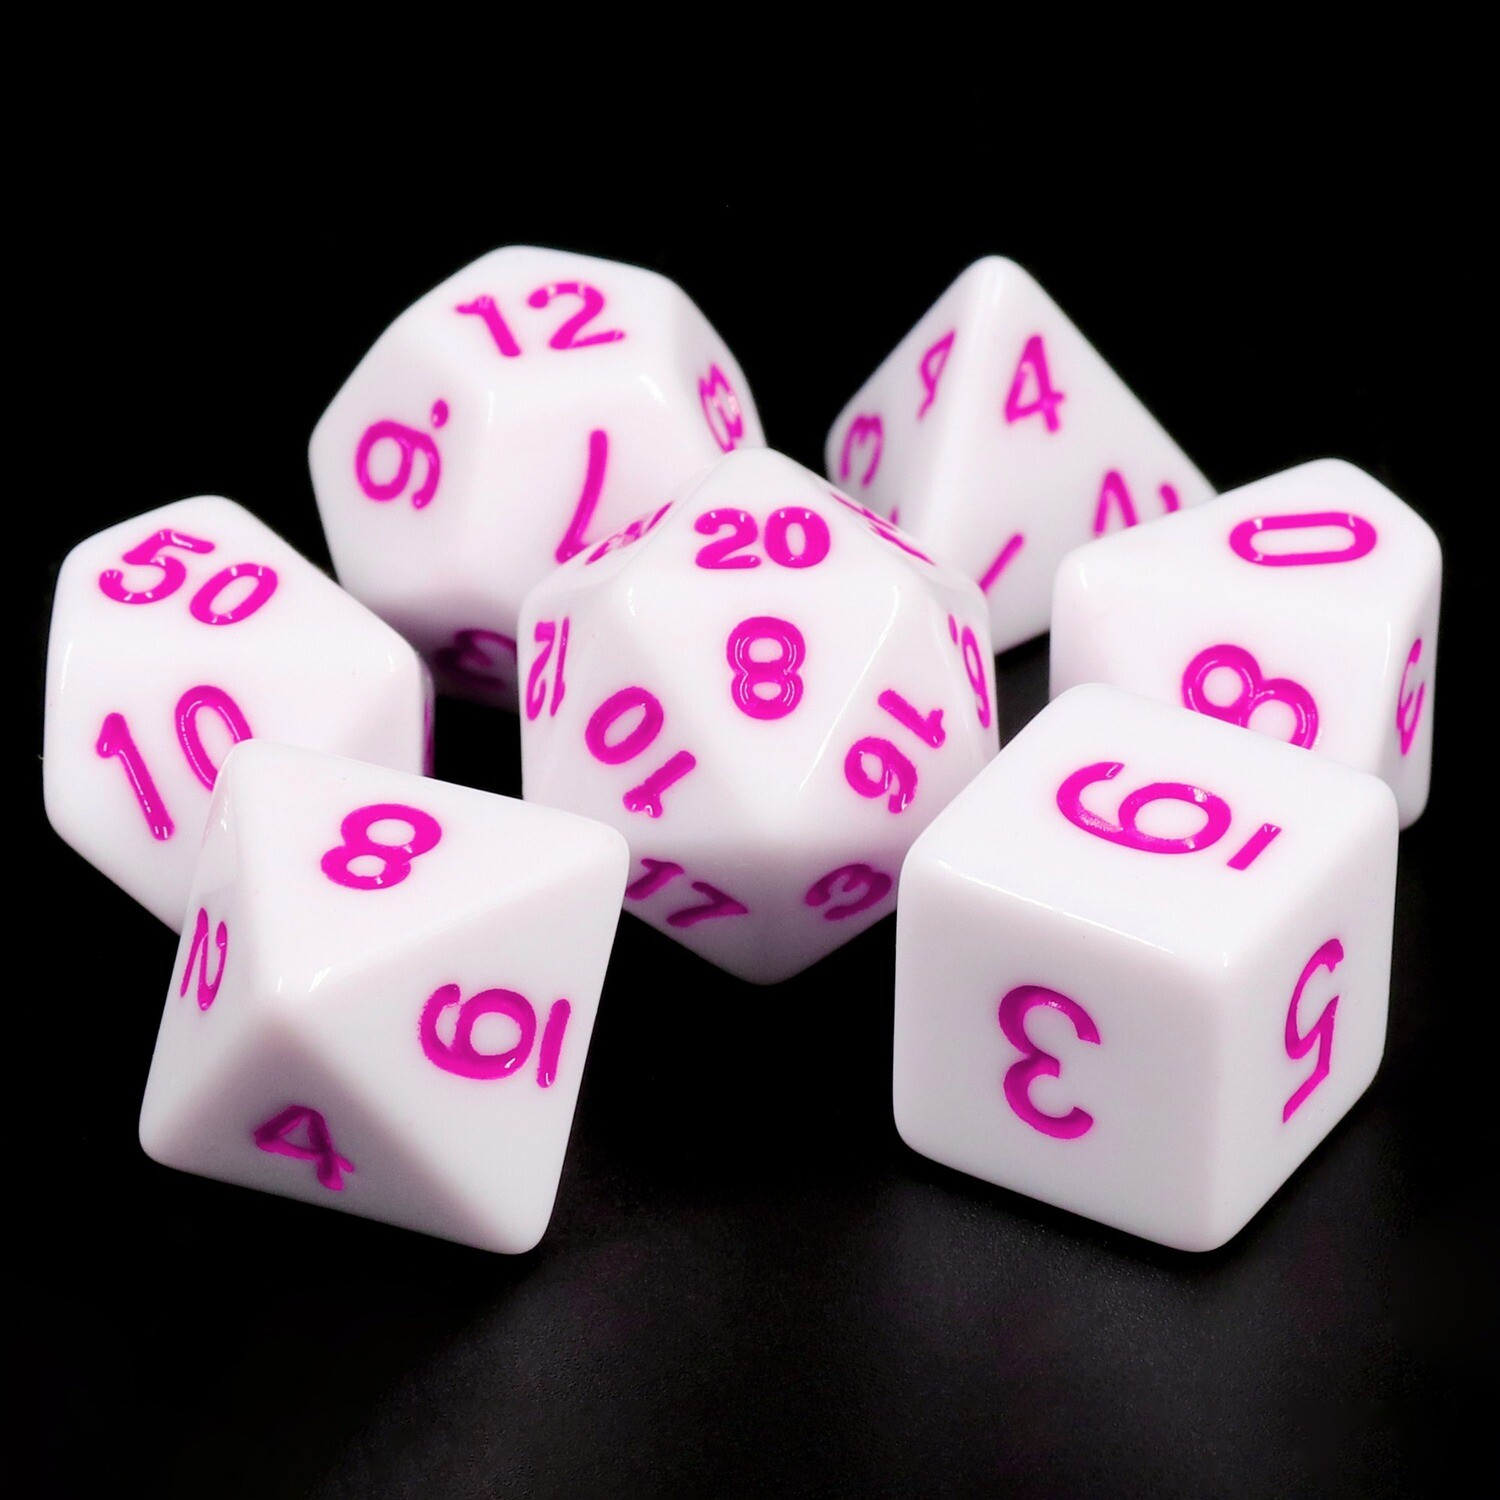 7 Die Set: Opaque White with Purple